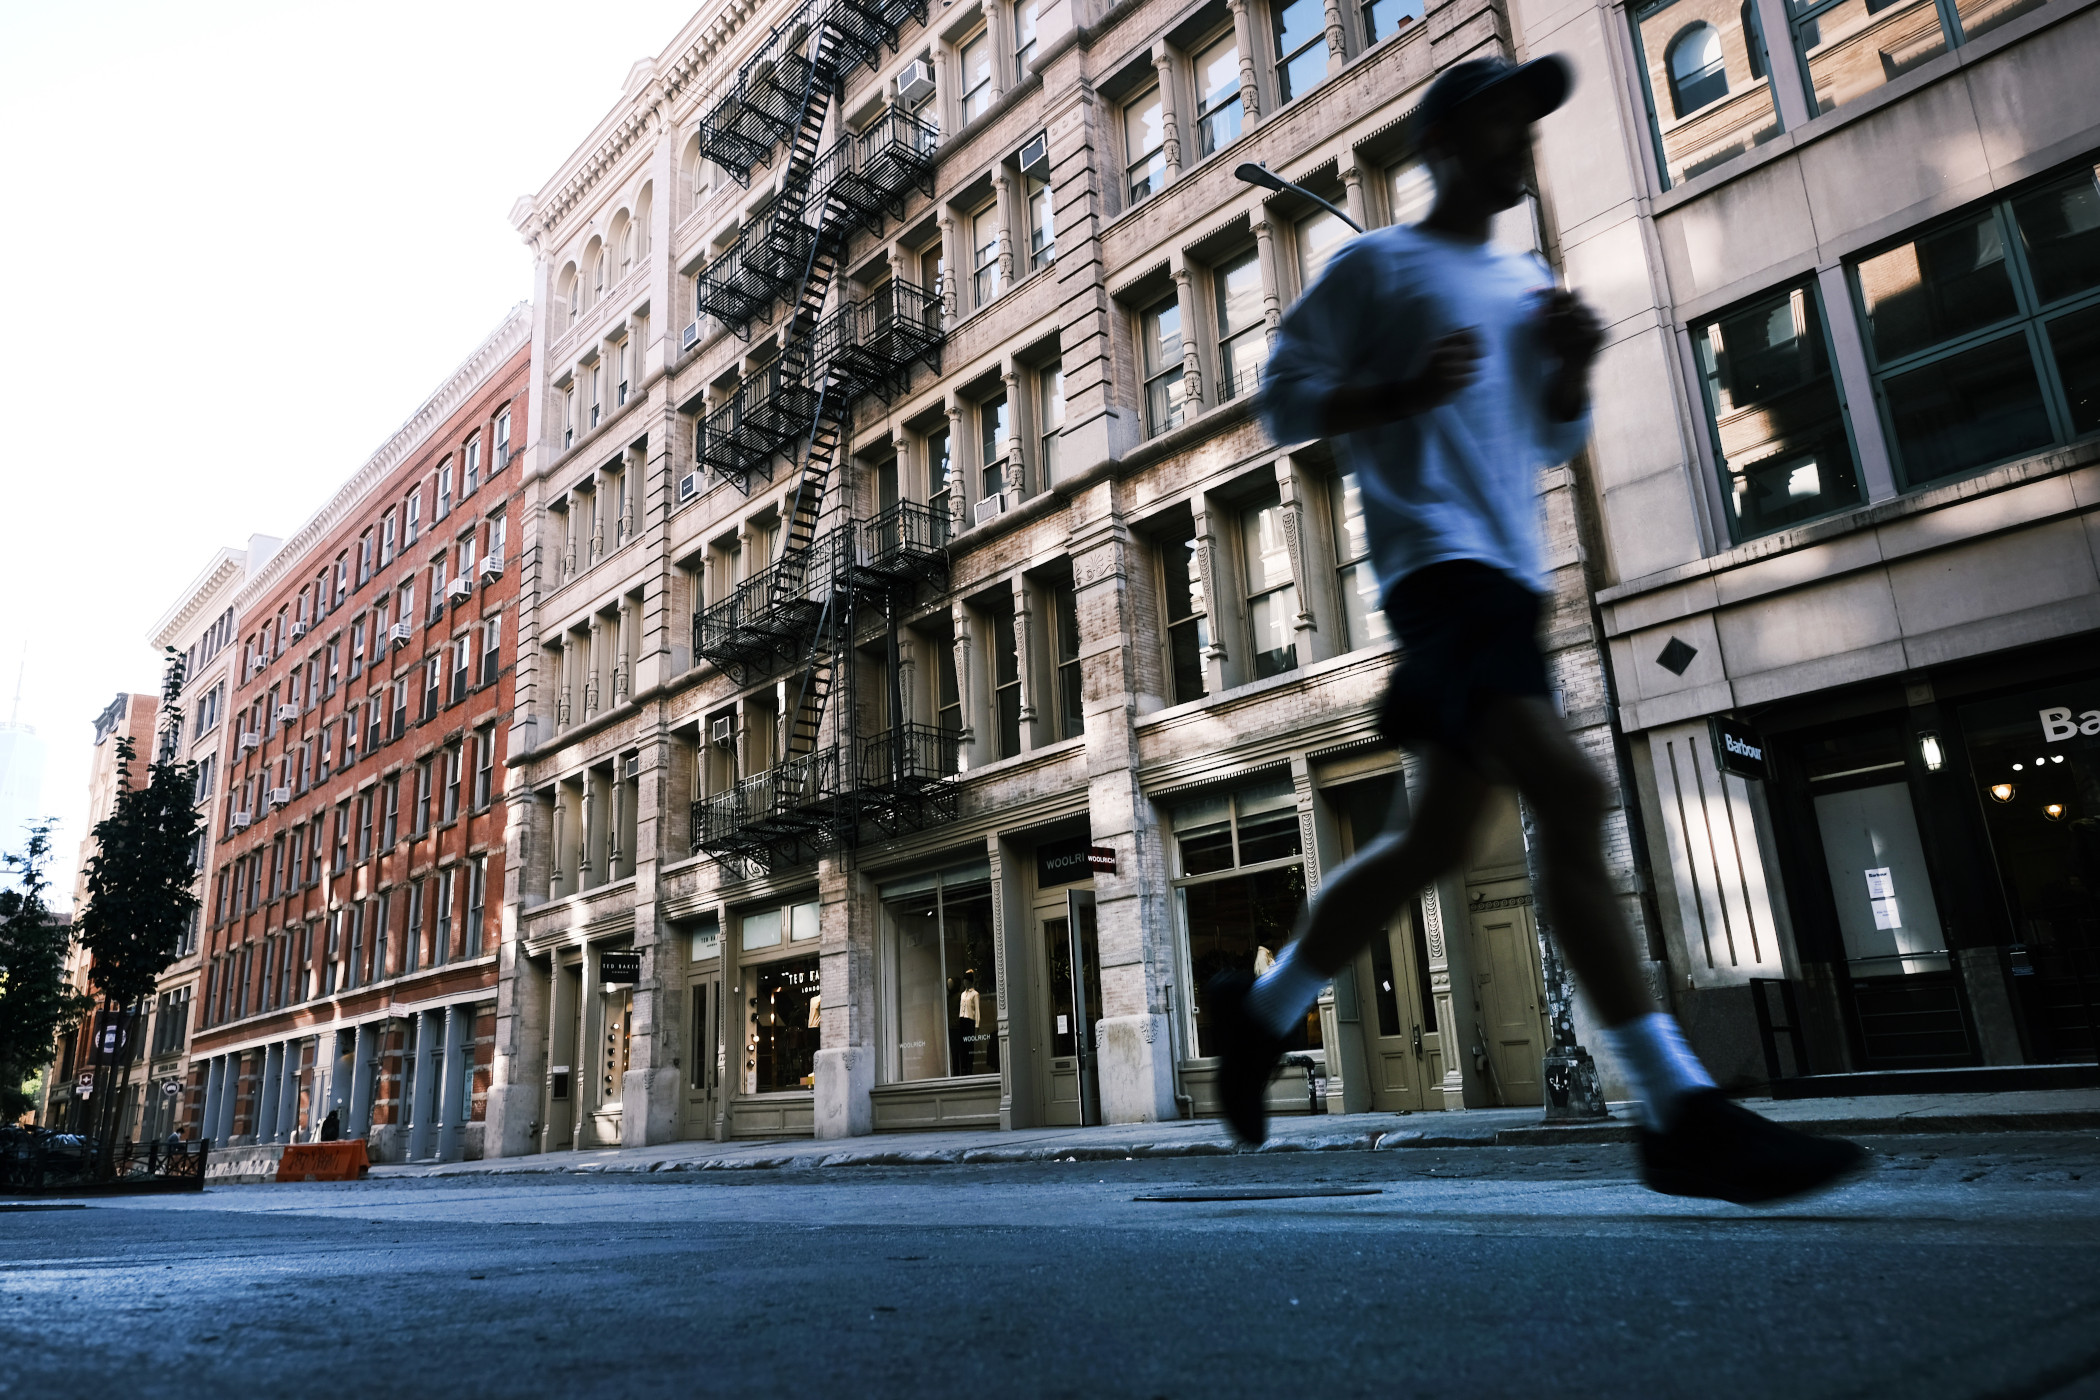 Multifamily landlords have been temporarily prevented from evicting tenants who are unable to pay rent because of the coronavirus pandemic by an order from the Centers for Disease Control. (Getty Images)